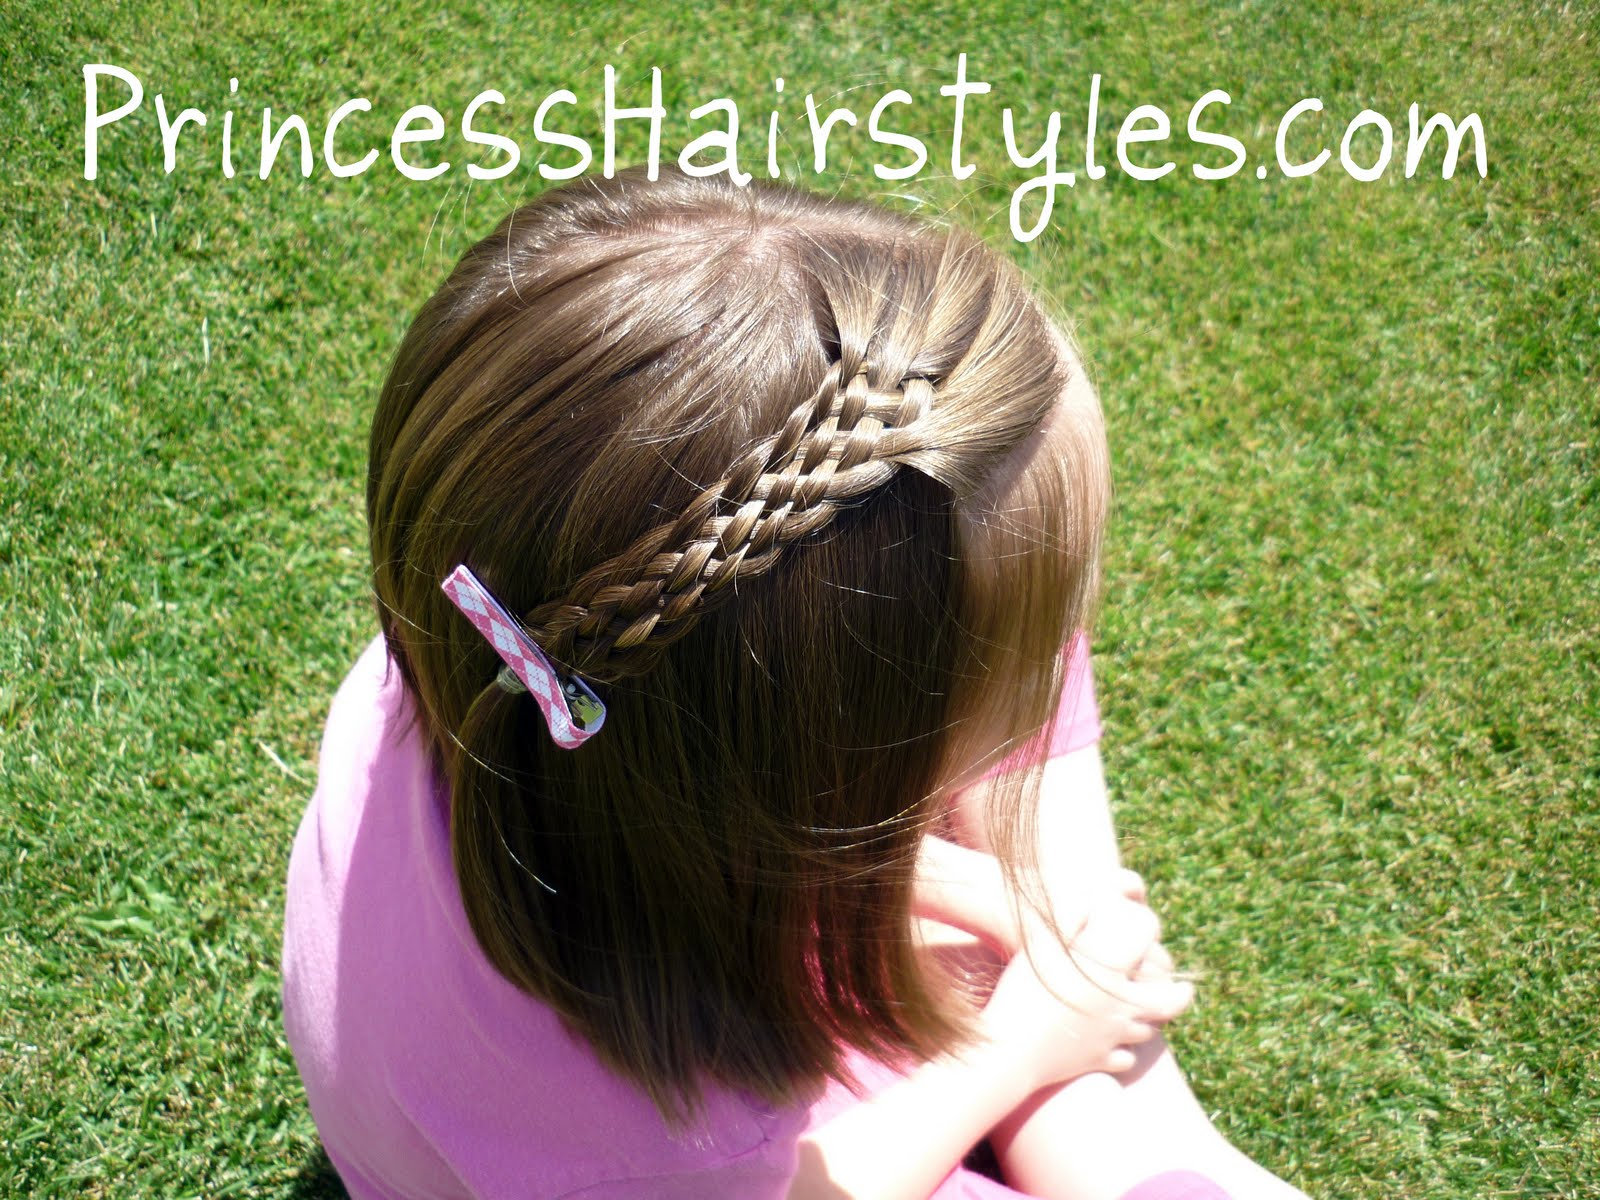 7 Strand Braid Video! | Hairstyles For Girls - Princess Hairstyles